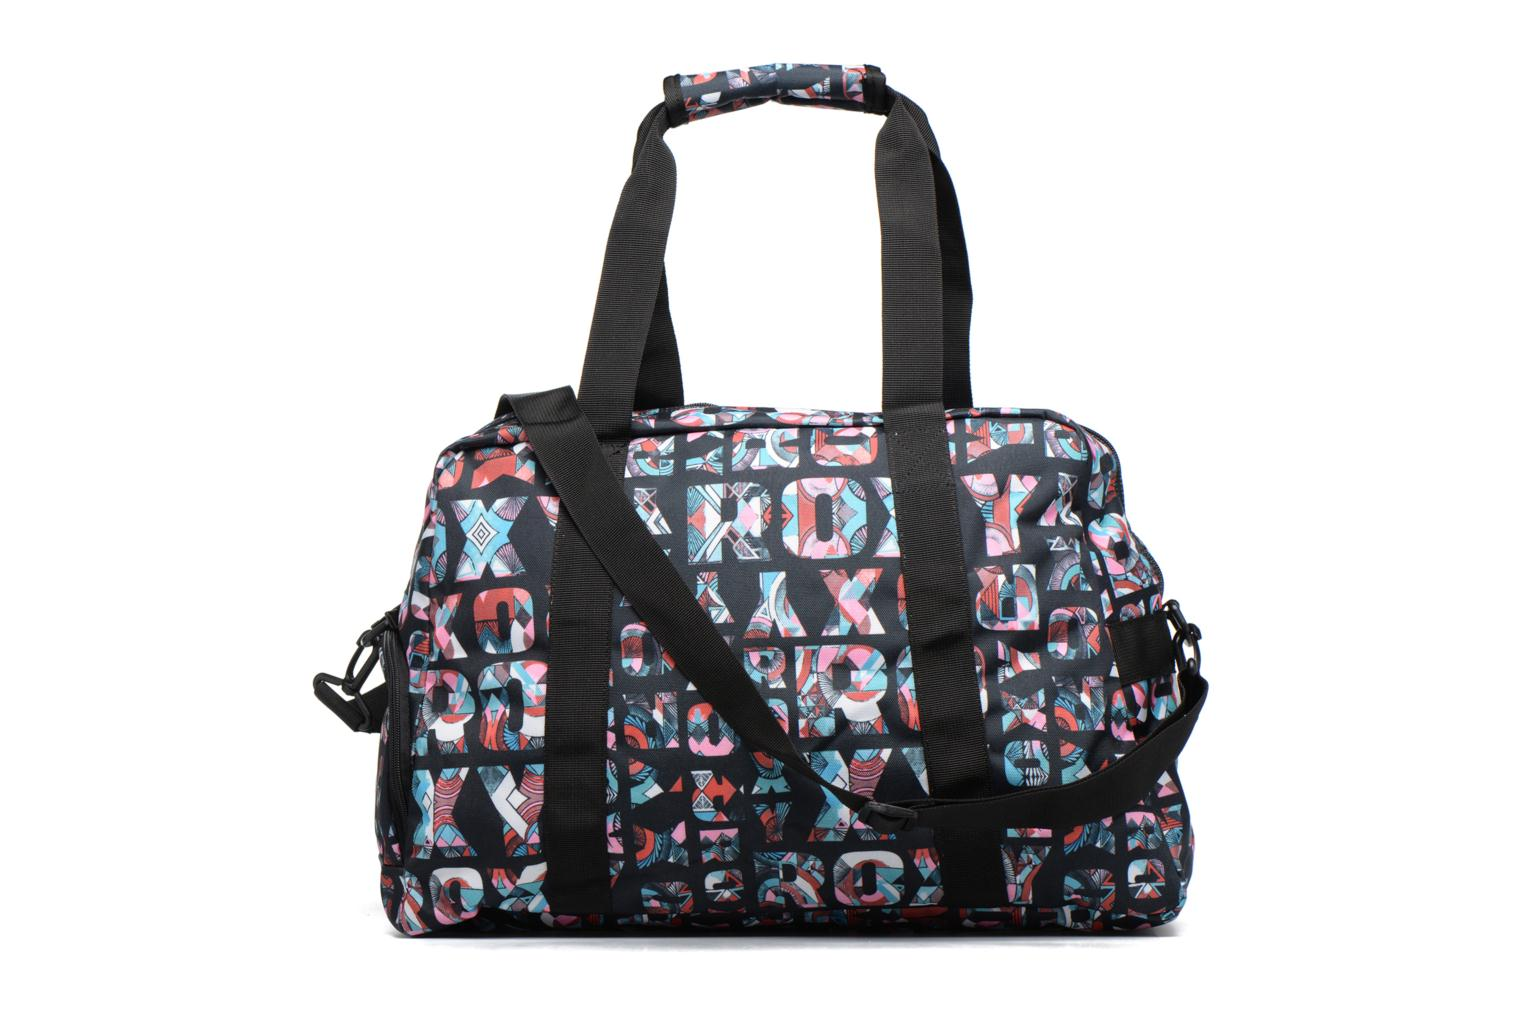 Sacs de sport Roxy Sugar it up Multicolore vue face